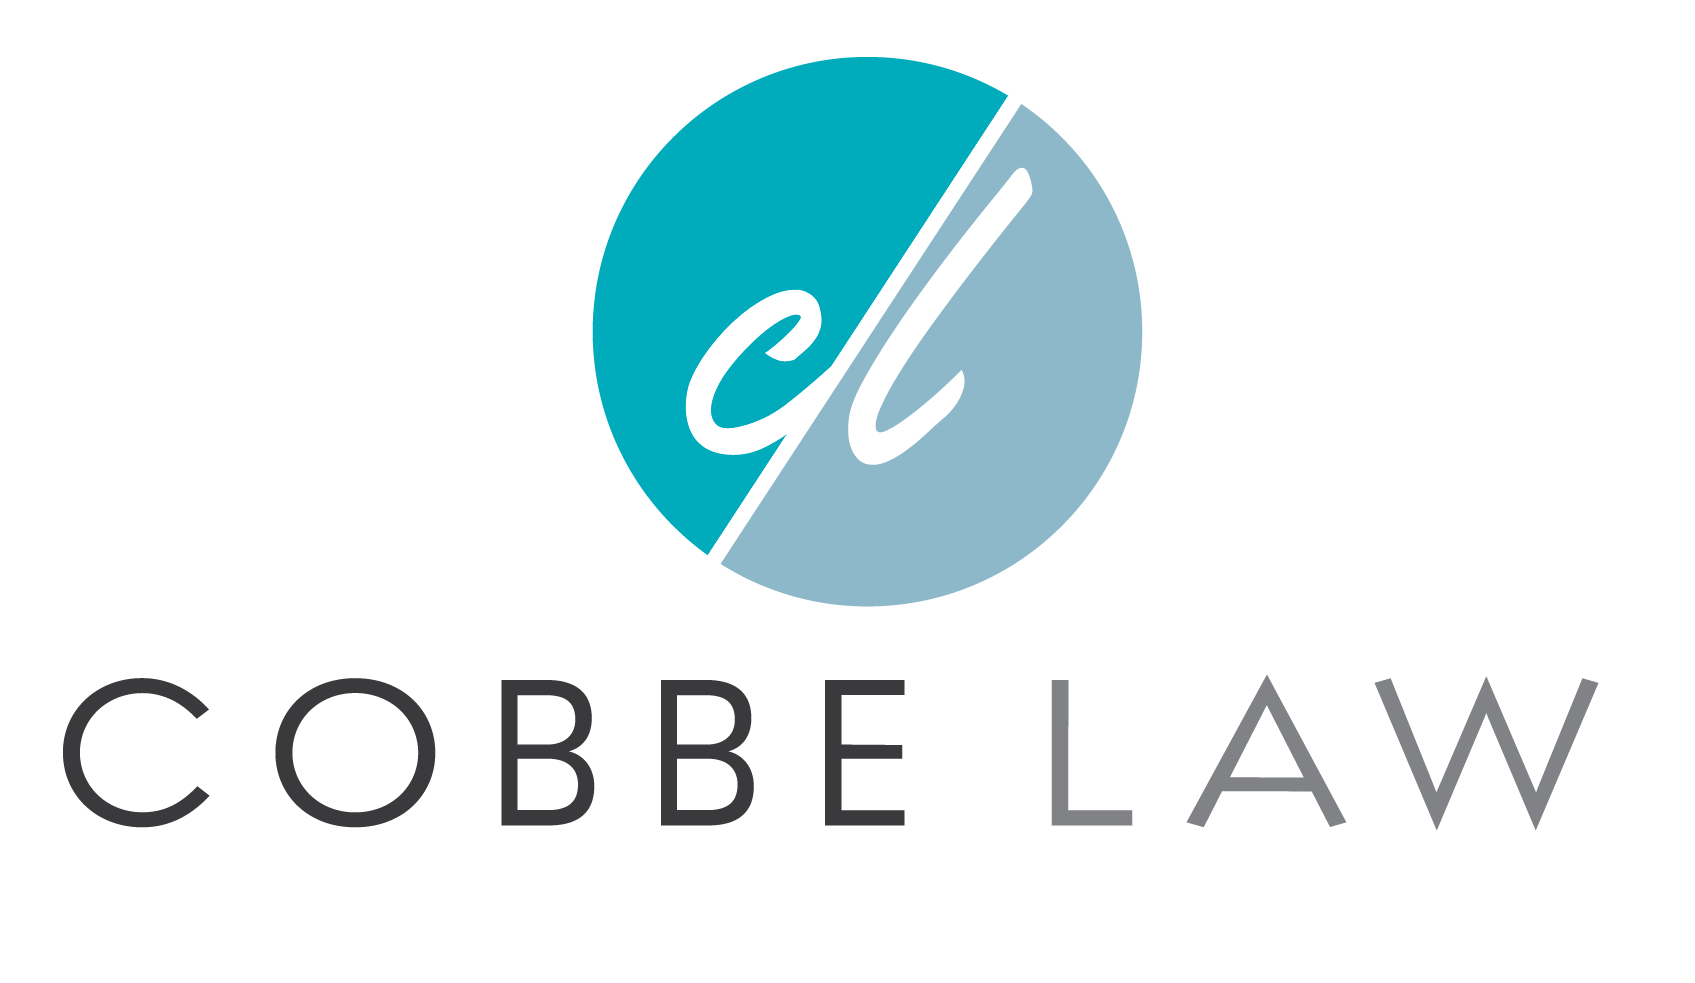 Cobbe Law